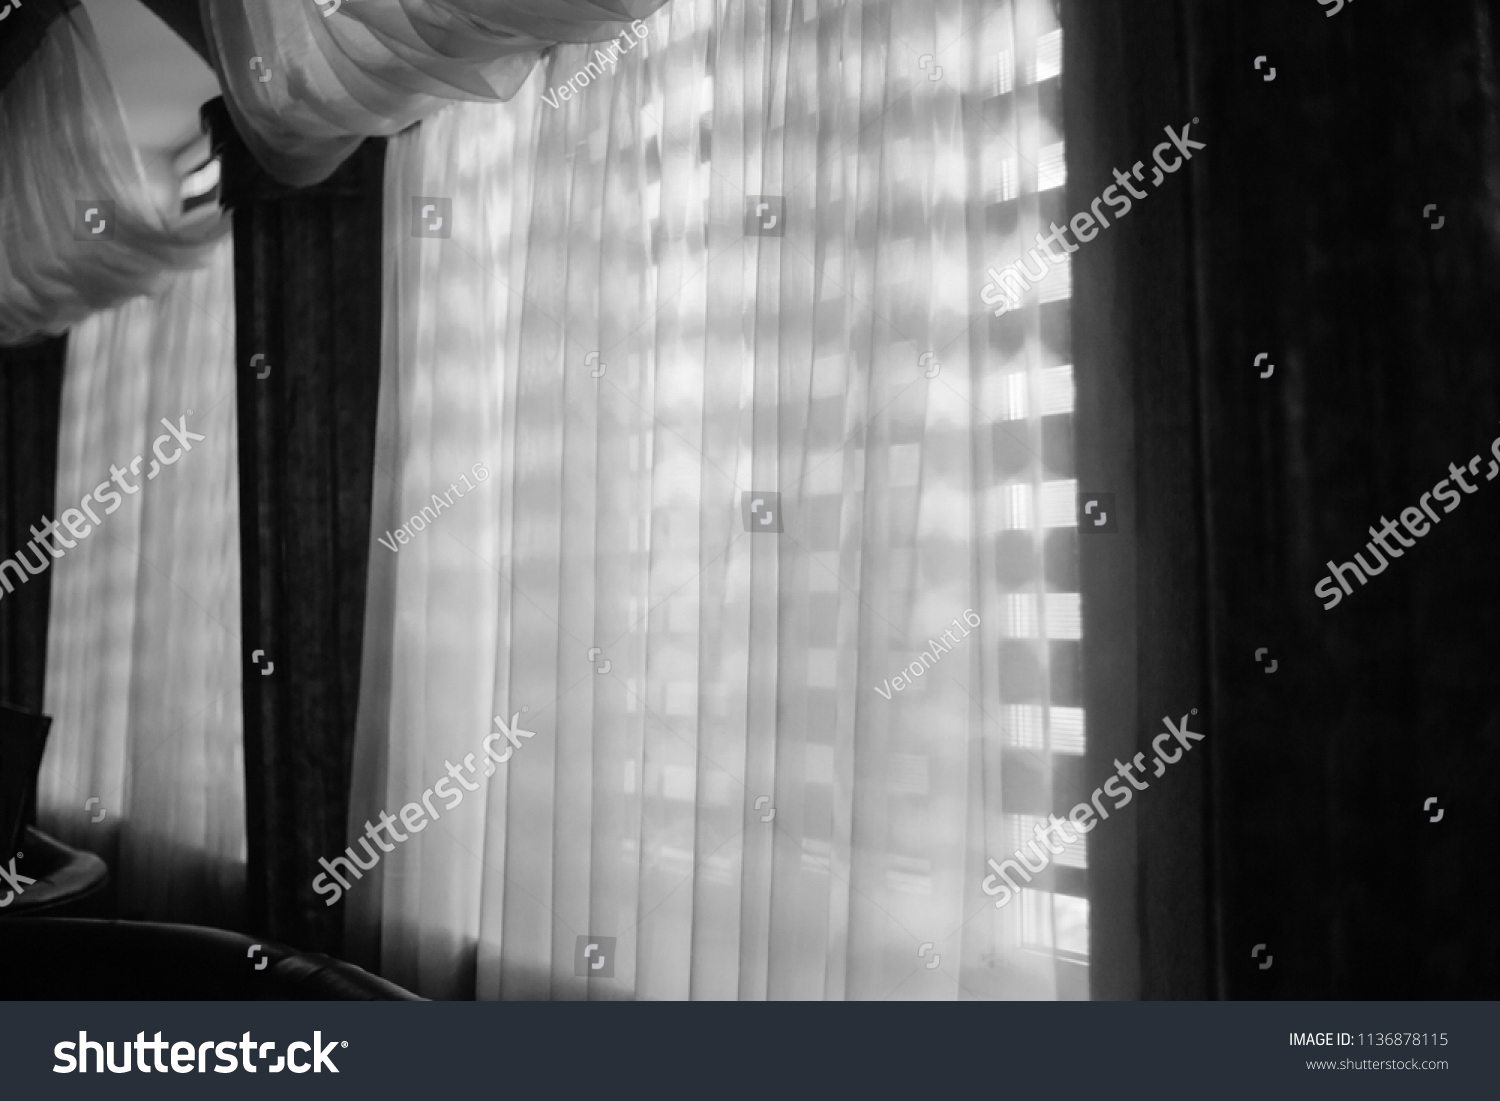 Windows Wooden Shutters Transparent Curtains Black Royalty